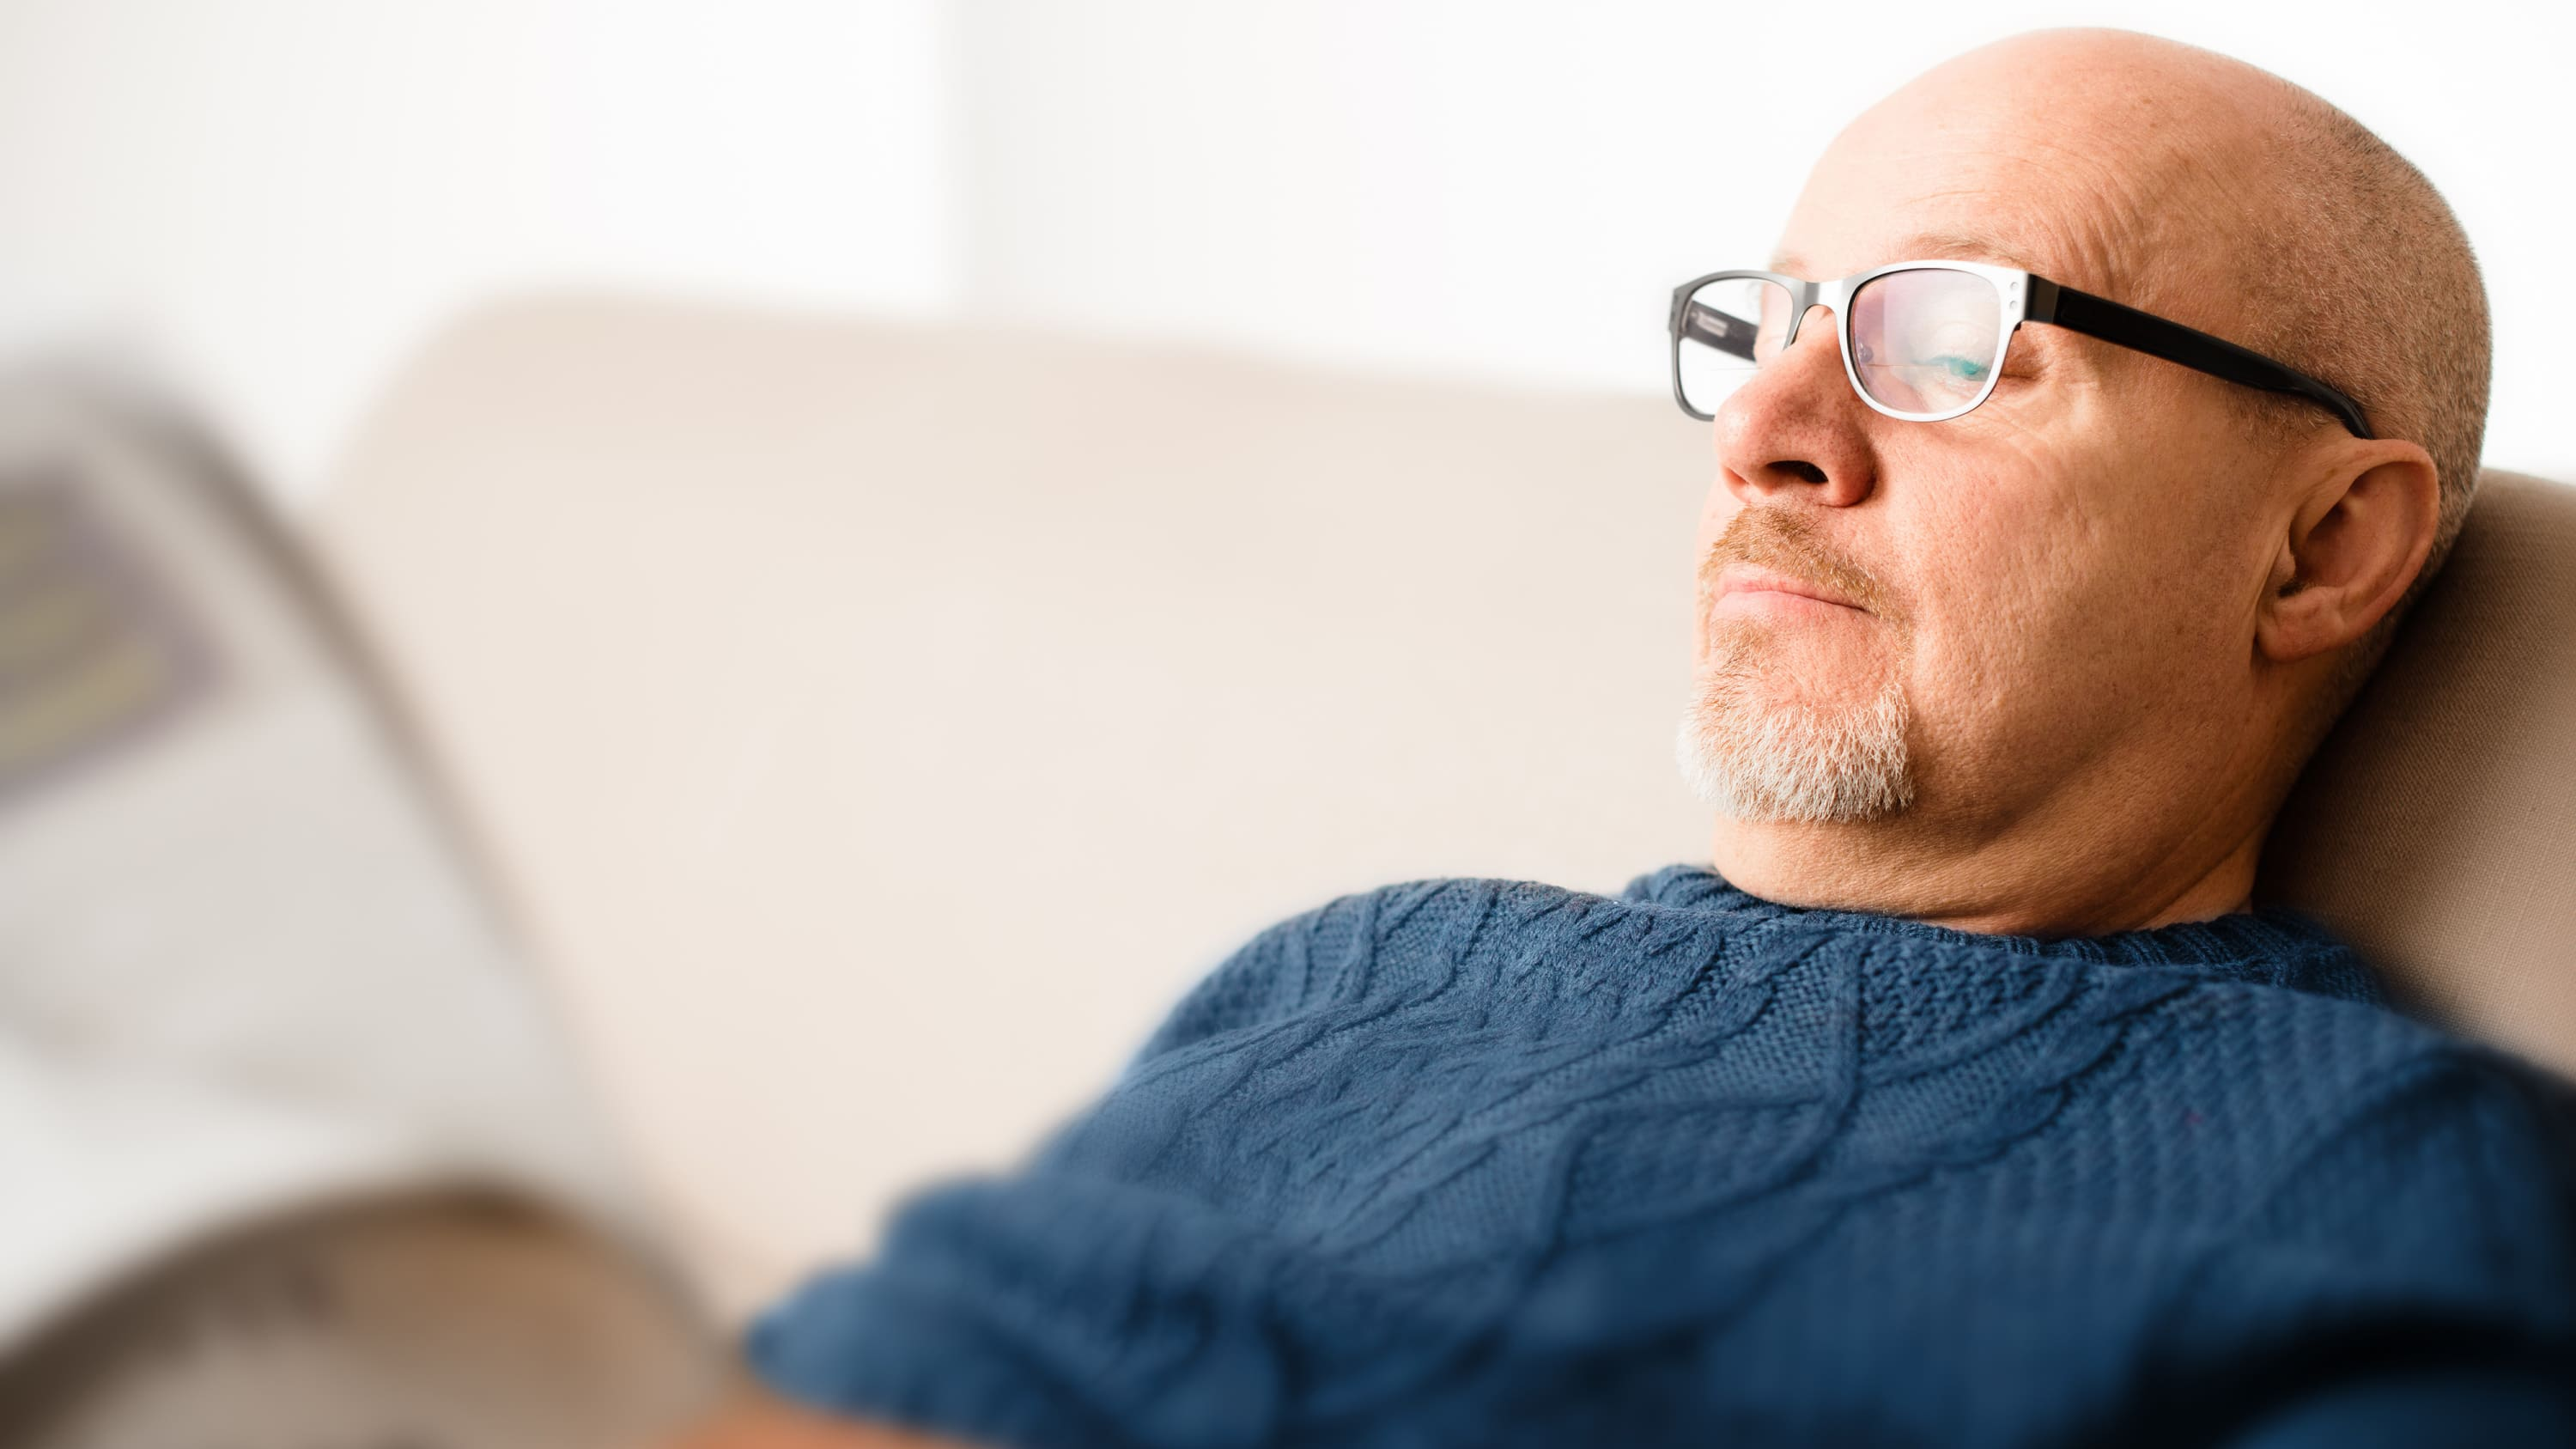 Middle-aged man who could be a candidate for peripheral vascular disease sits on the couch reading a newspaper.